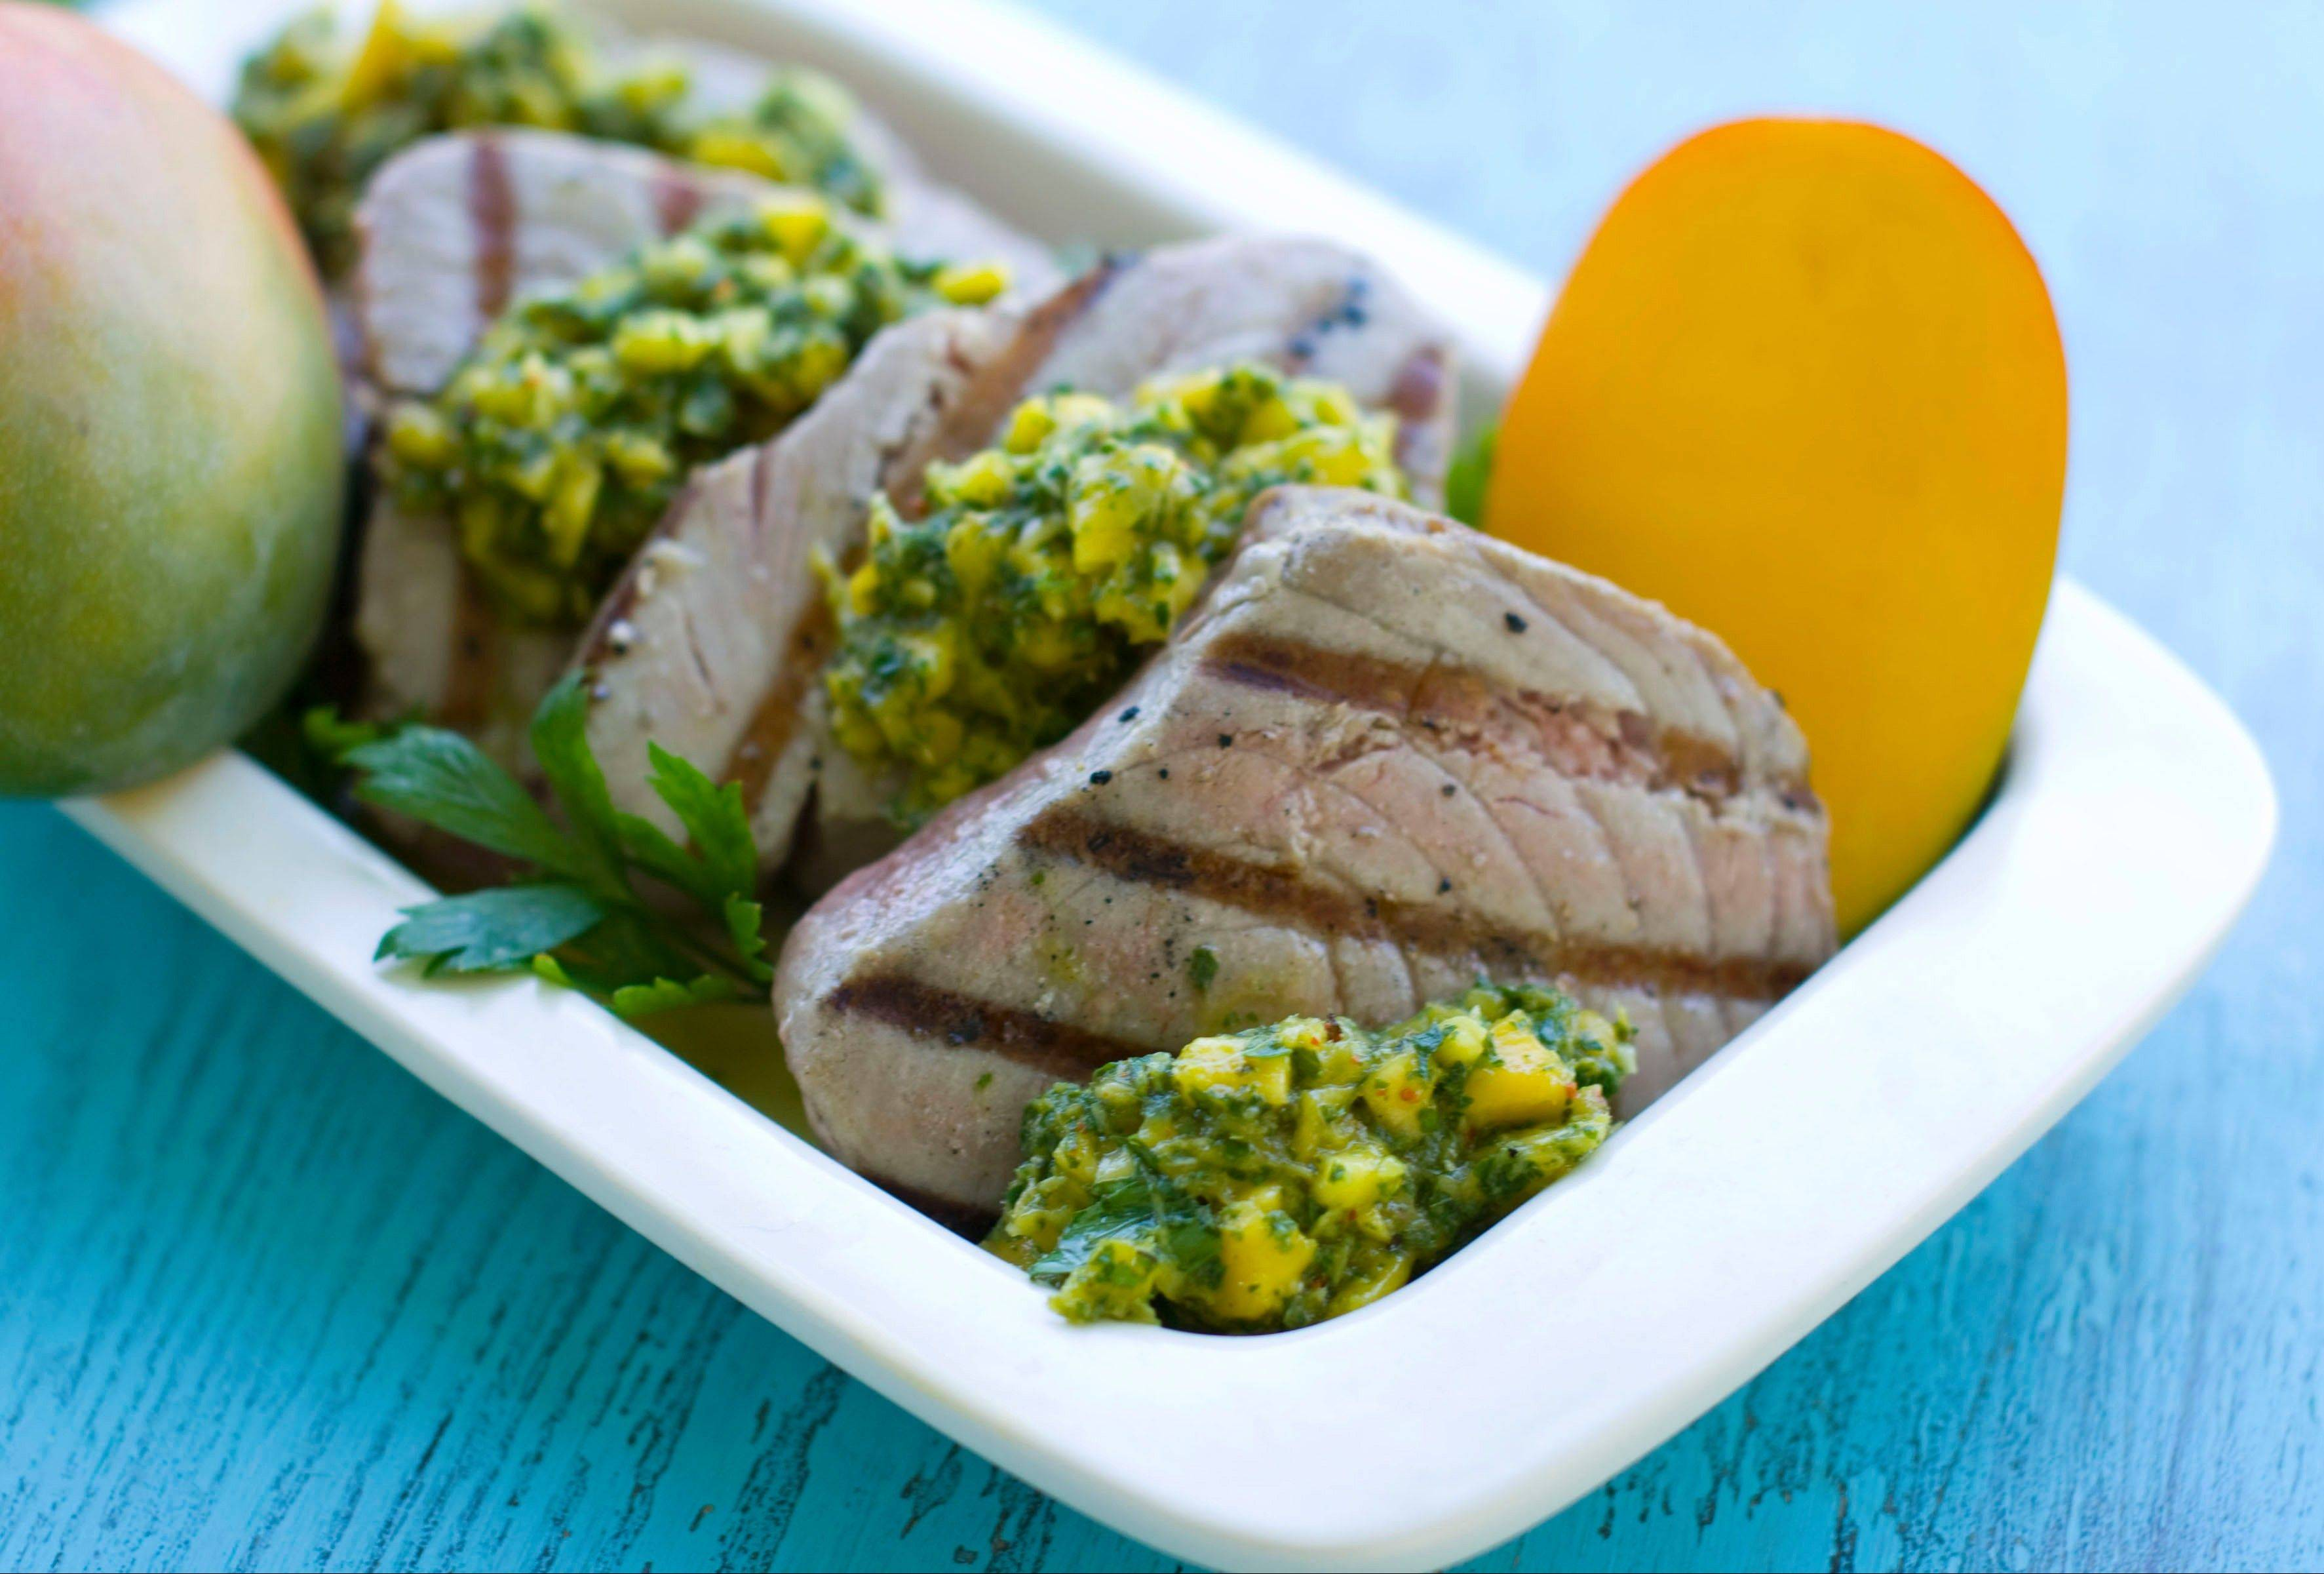 Send summer out with the big, bold flavors of Grilled Tuna Steaks with Mango Herb Salsa.